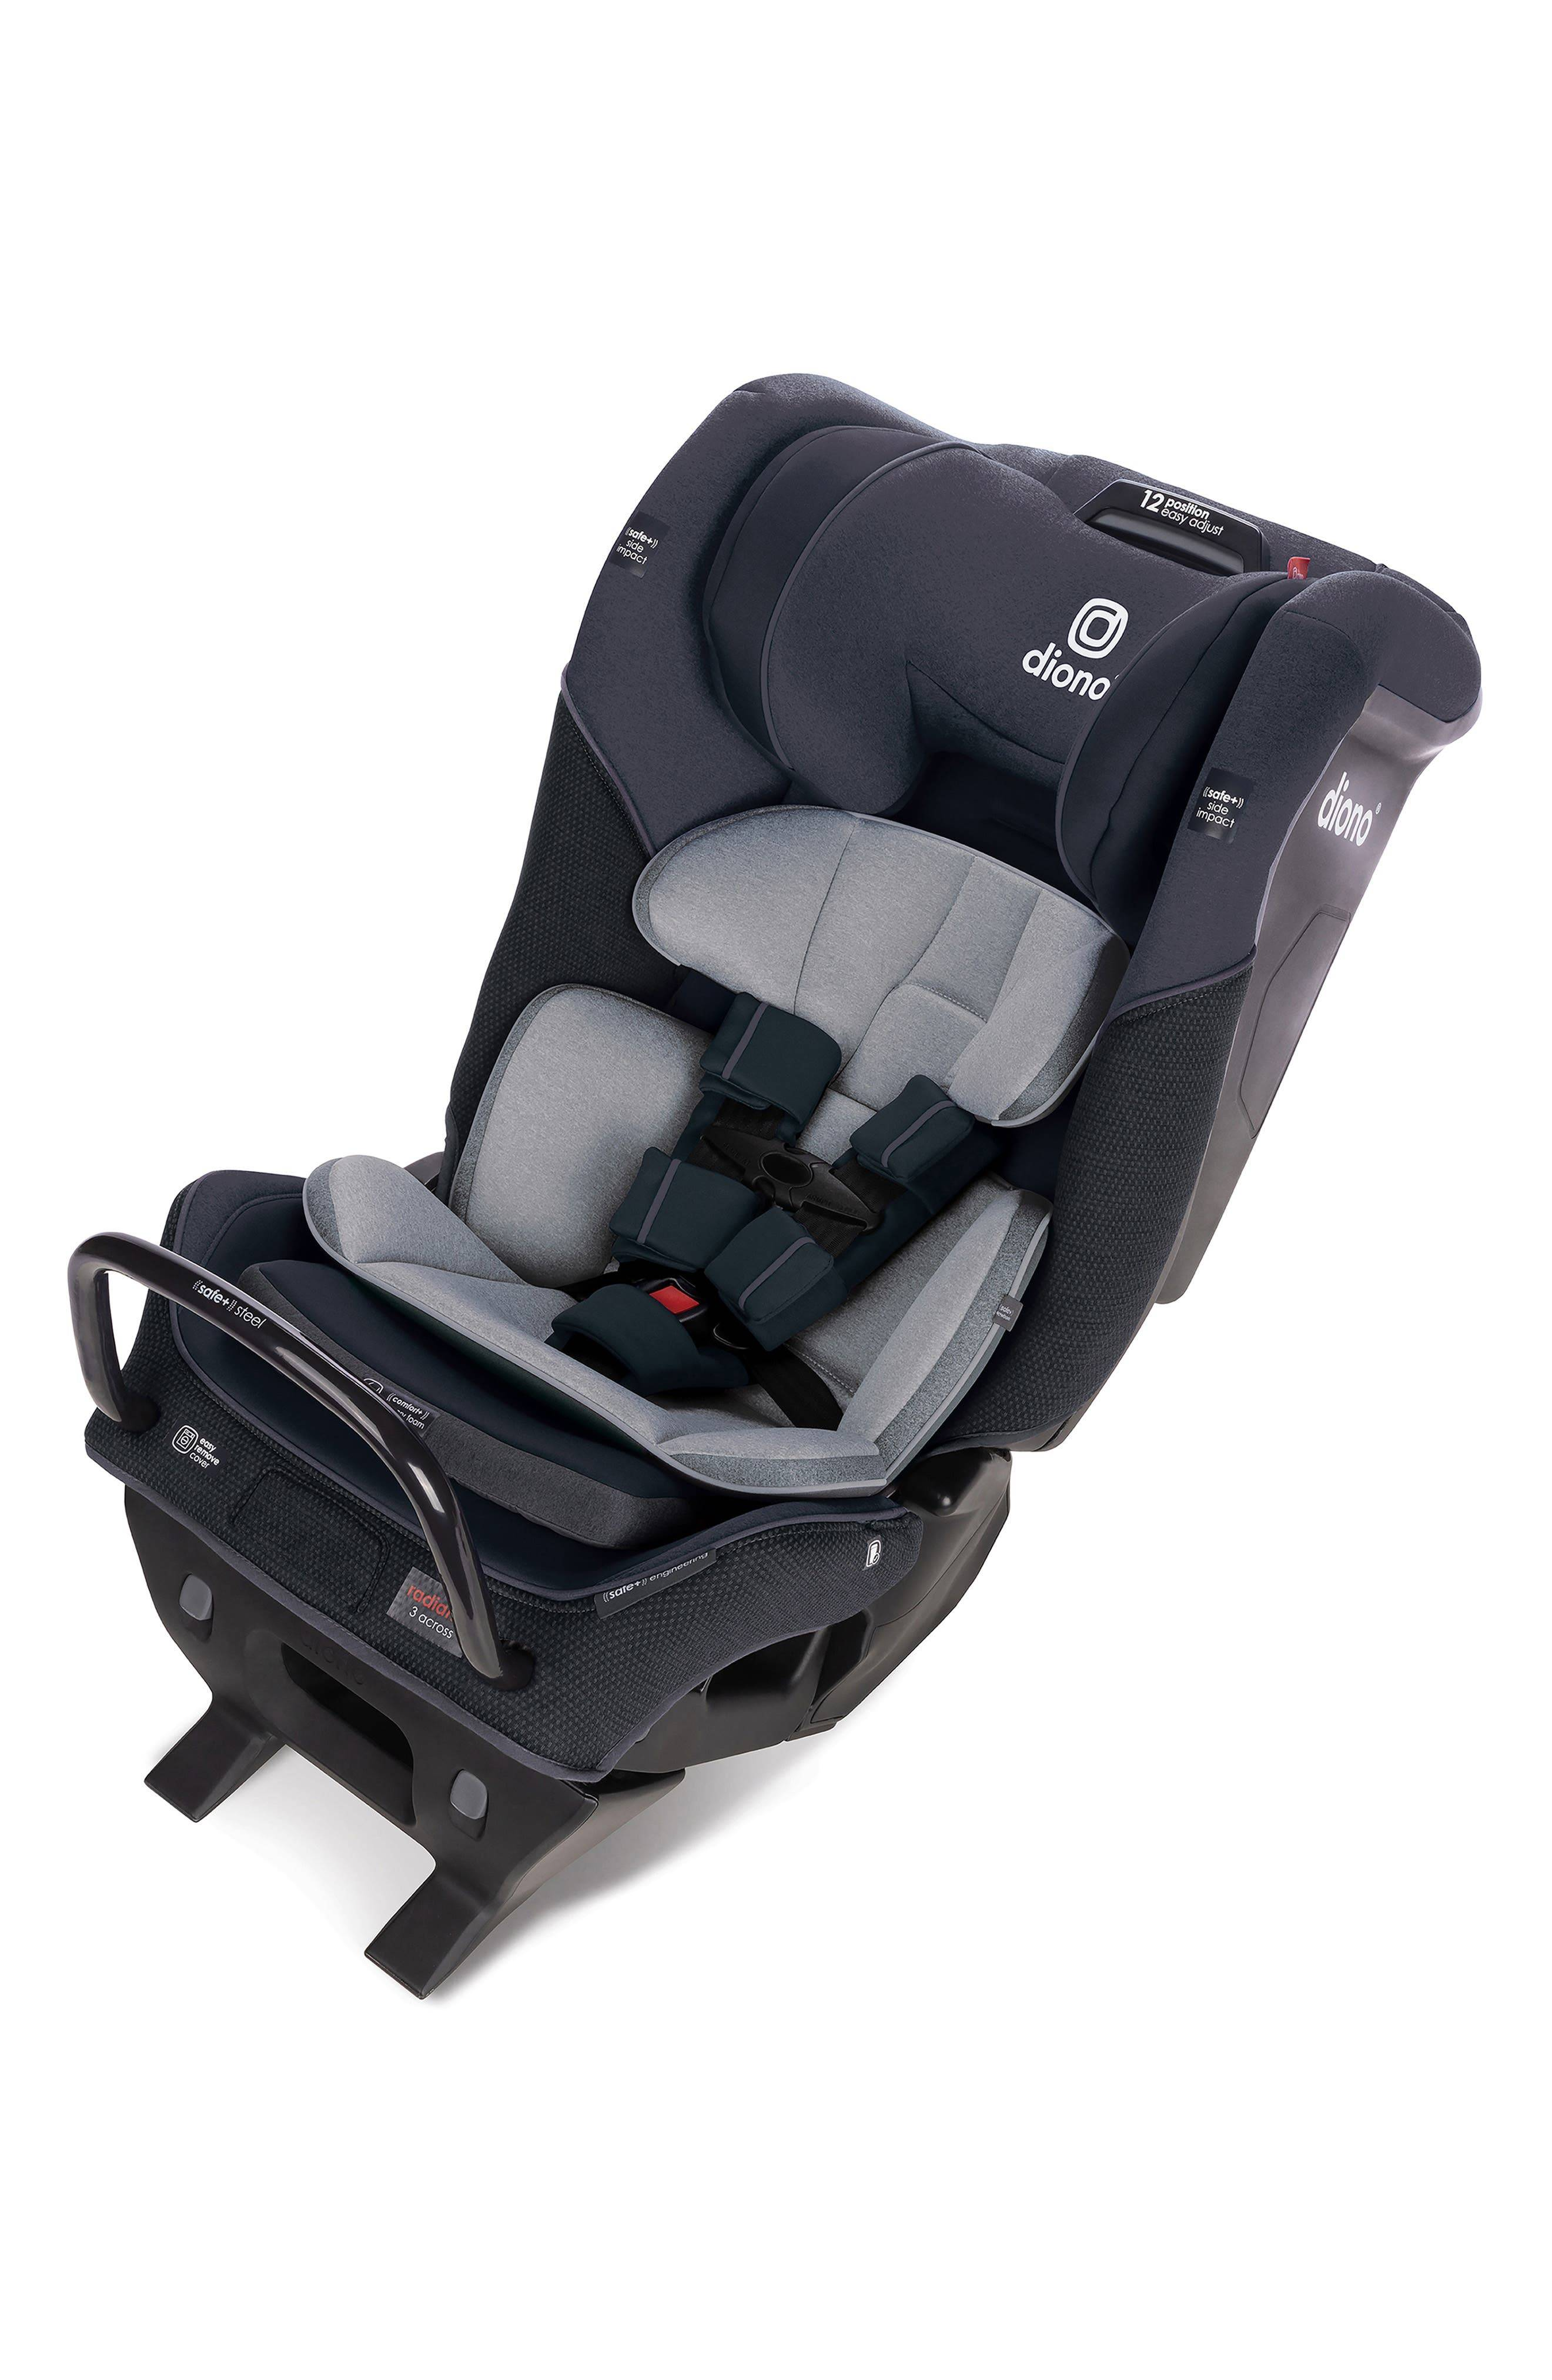 Diono Infant Diono Radian 3Qx All-In-One Convertible Car Seat, Size One Size - Black